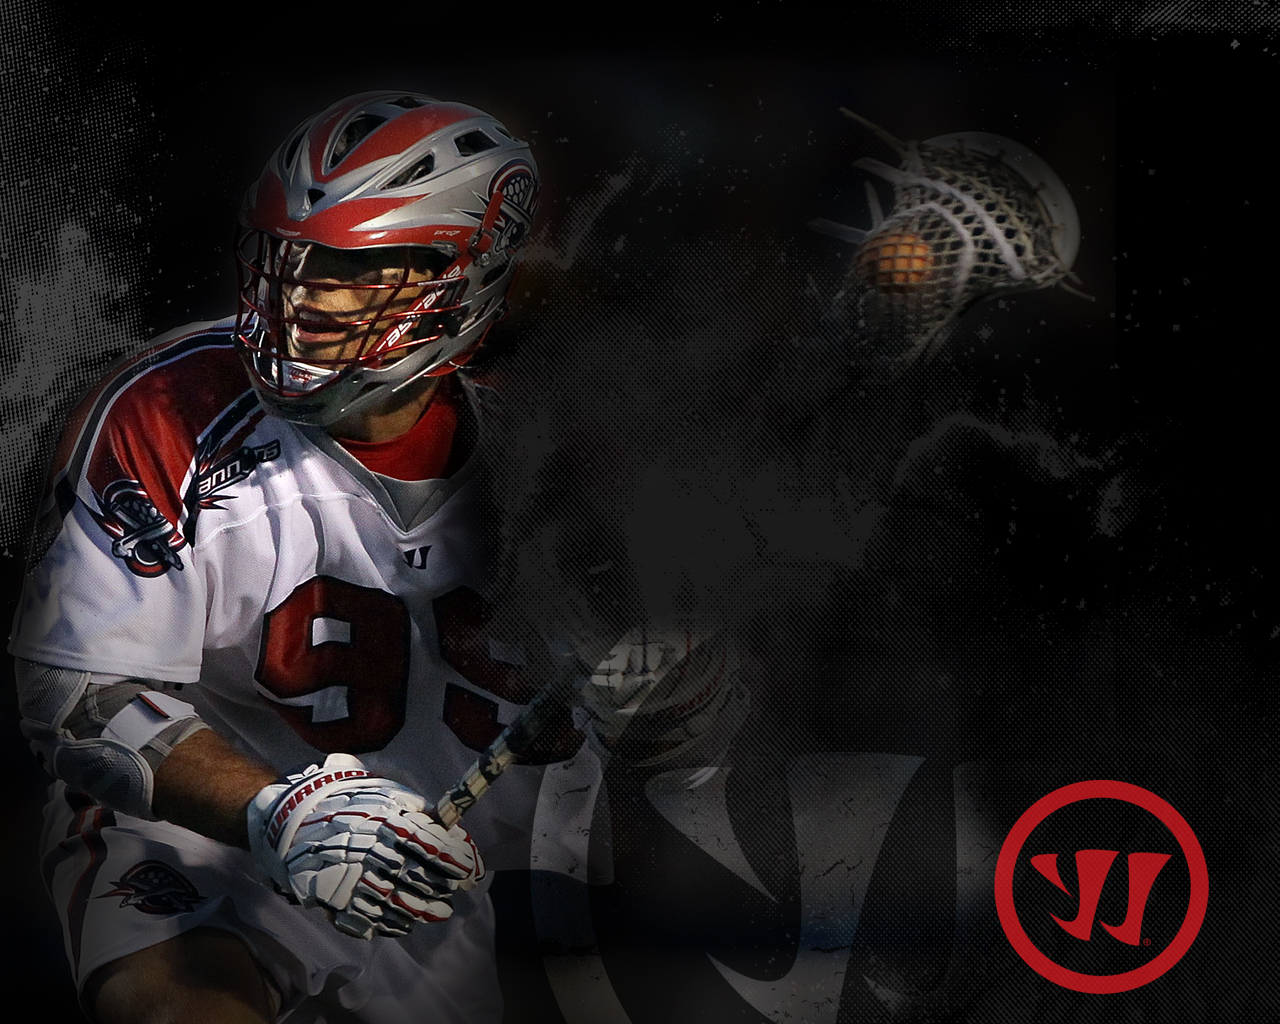 lacrosse wallpaper wallpapers - photo #28